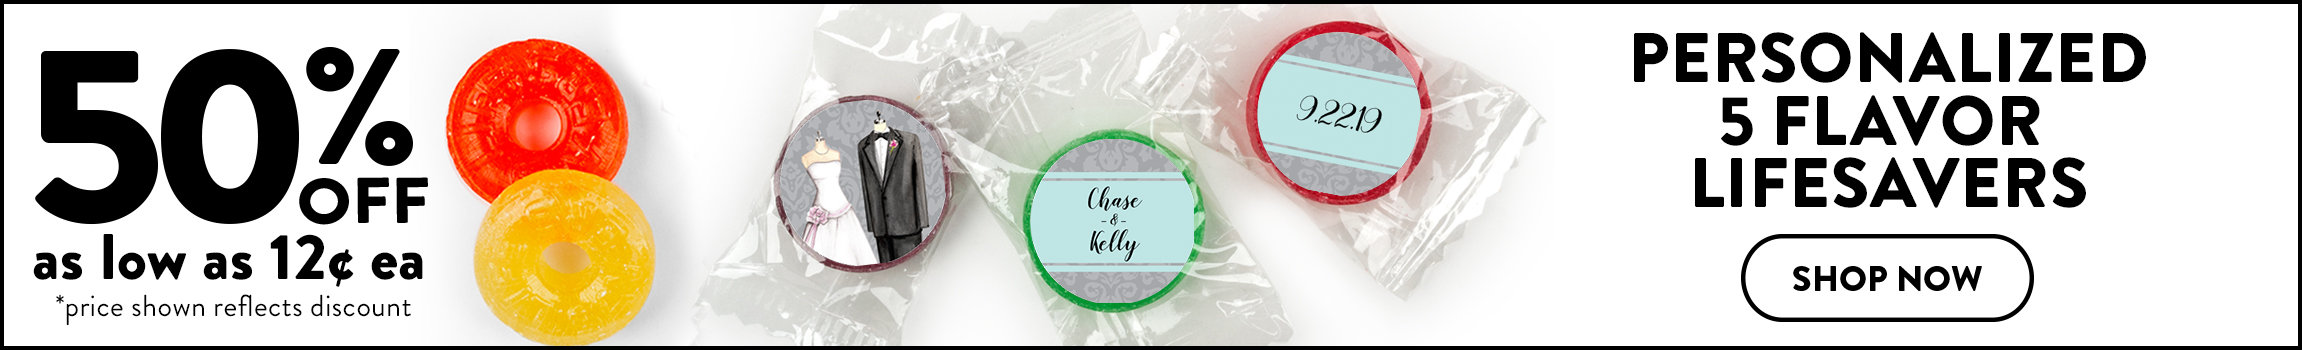 Personalized Wedding Reception Favors | Wedding Reception Candy